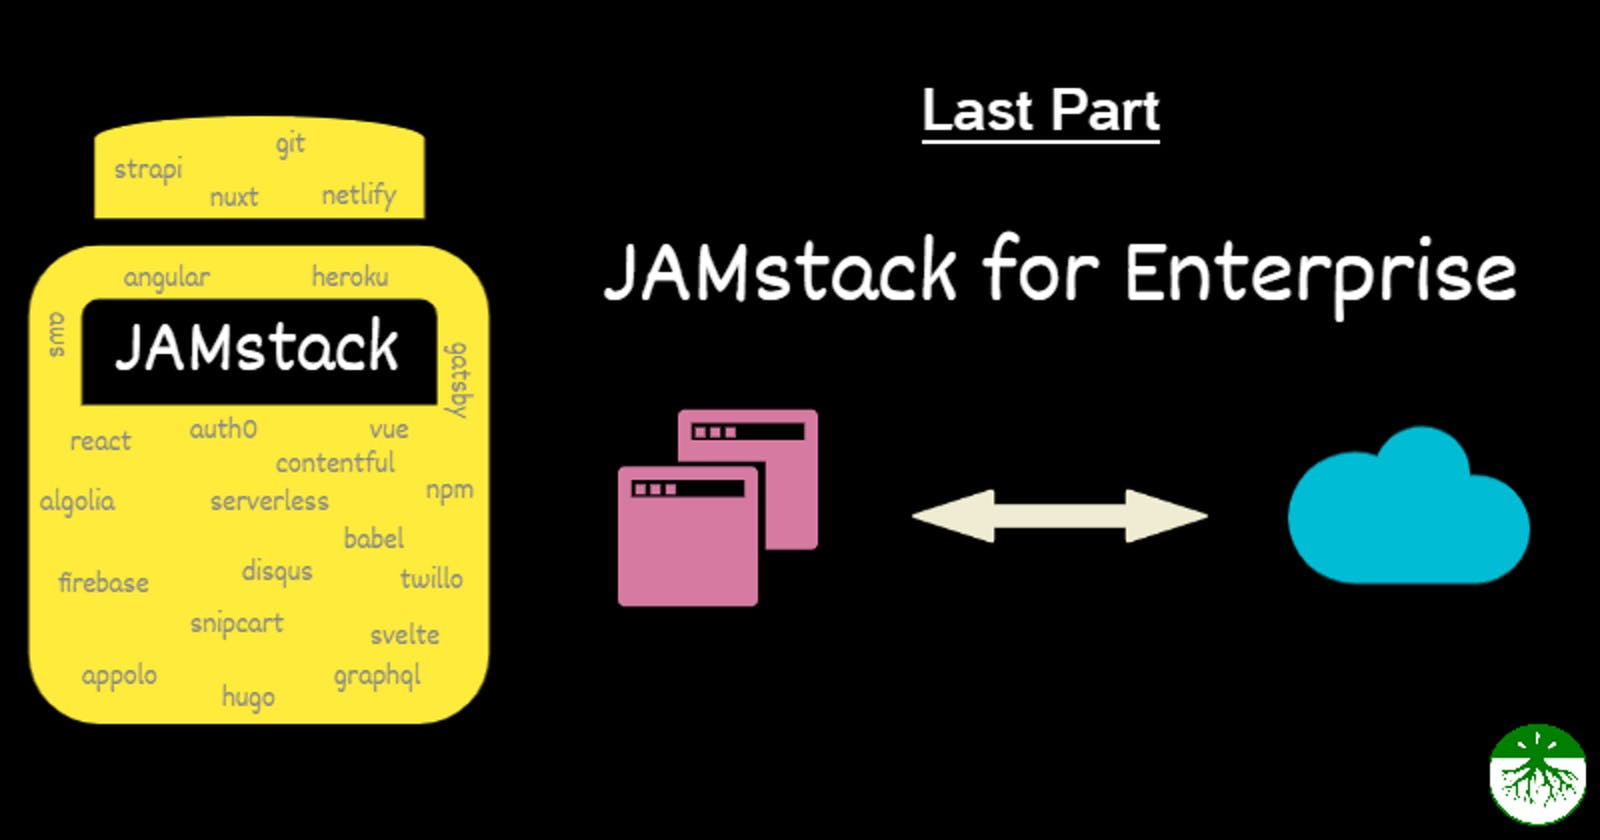 How to use Jamstack with the server side and enterprise app